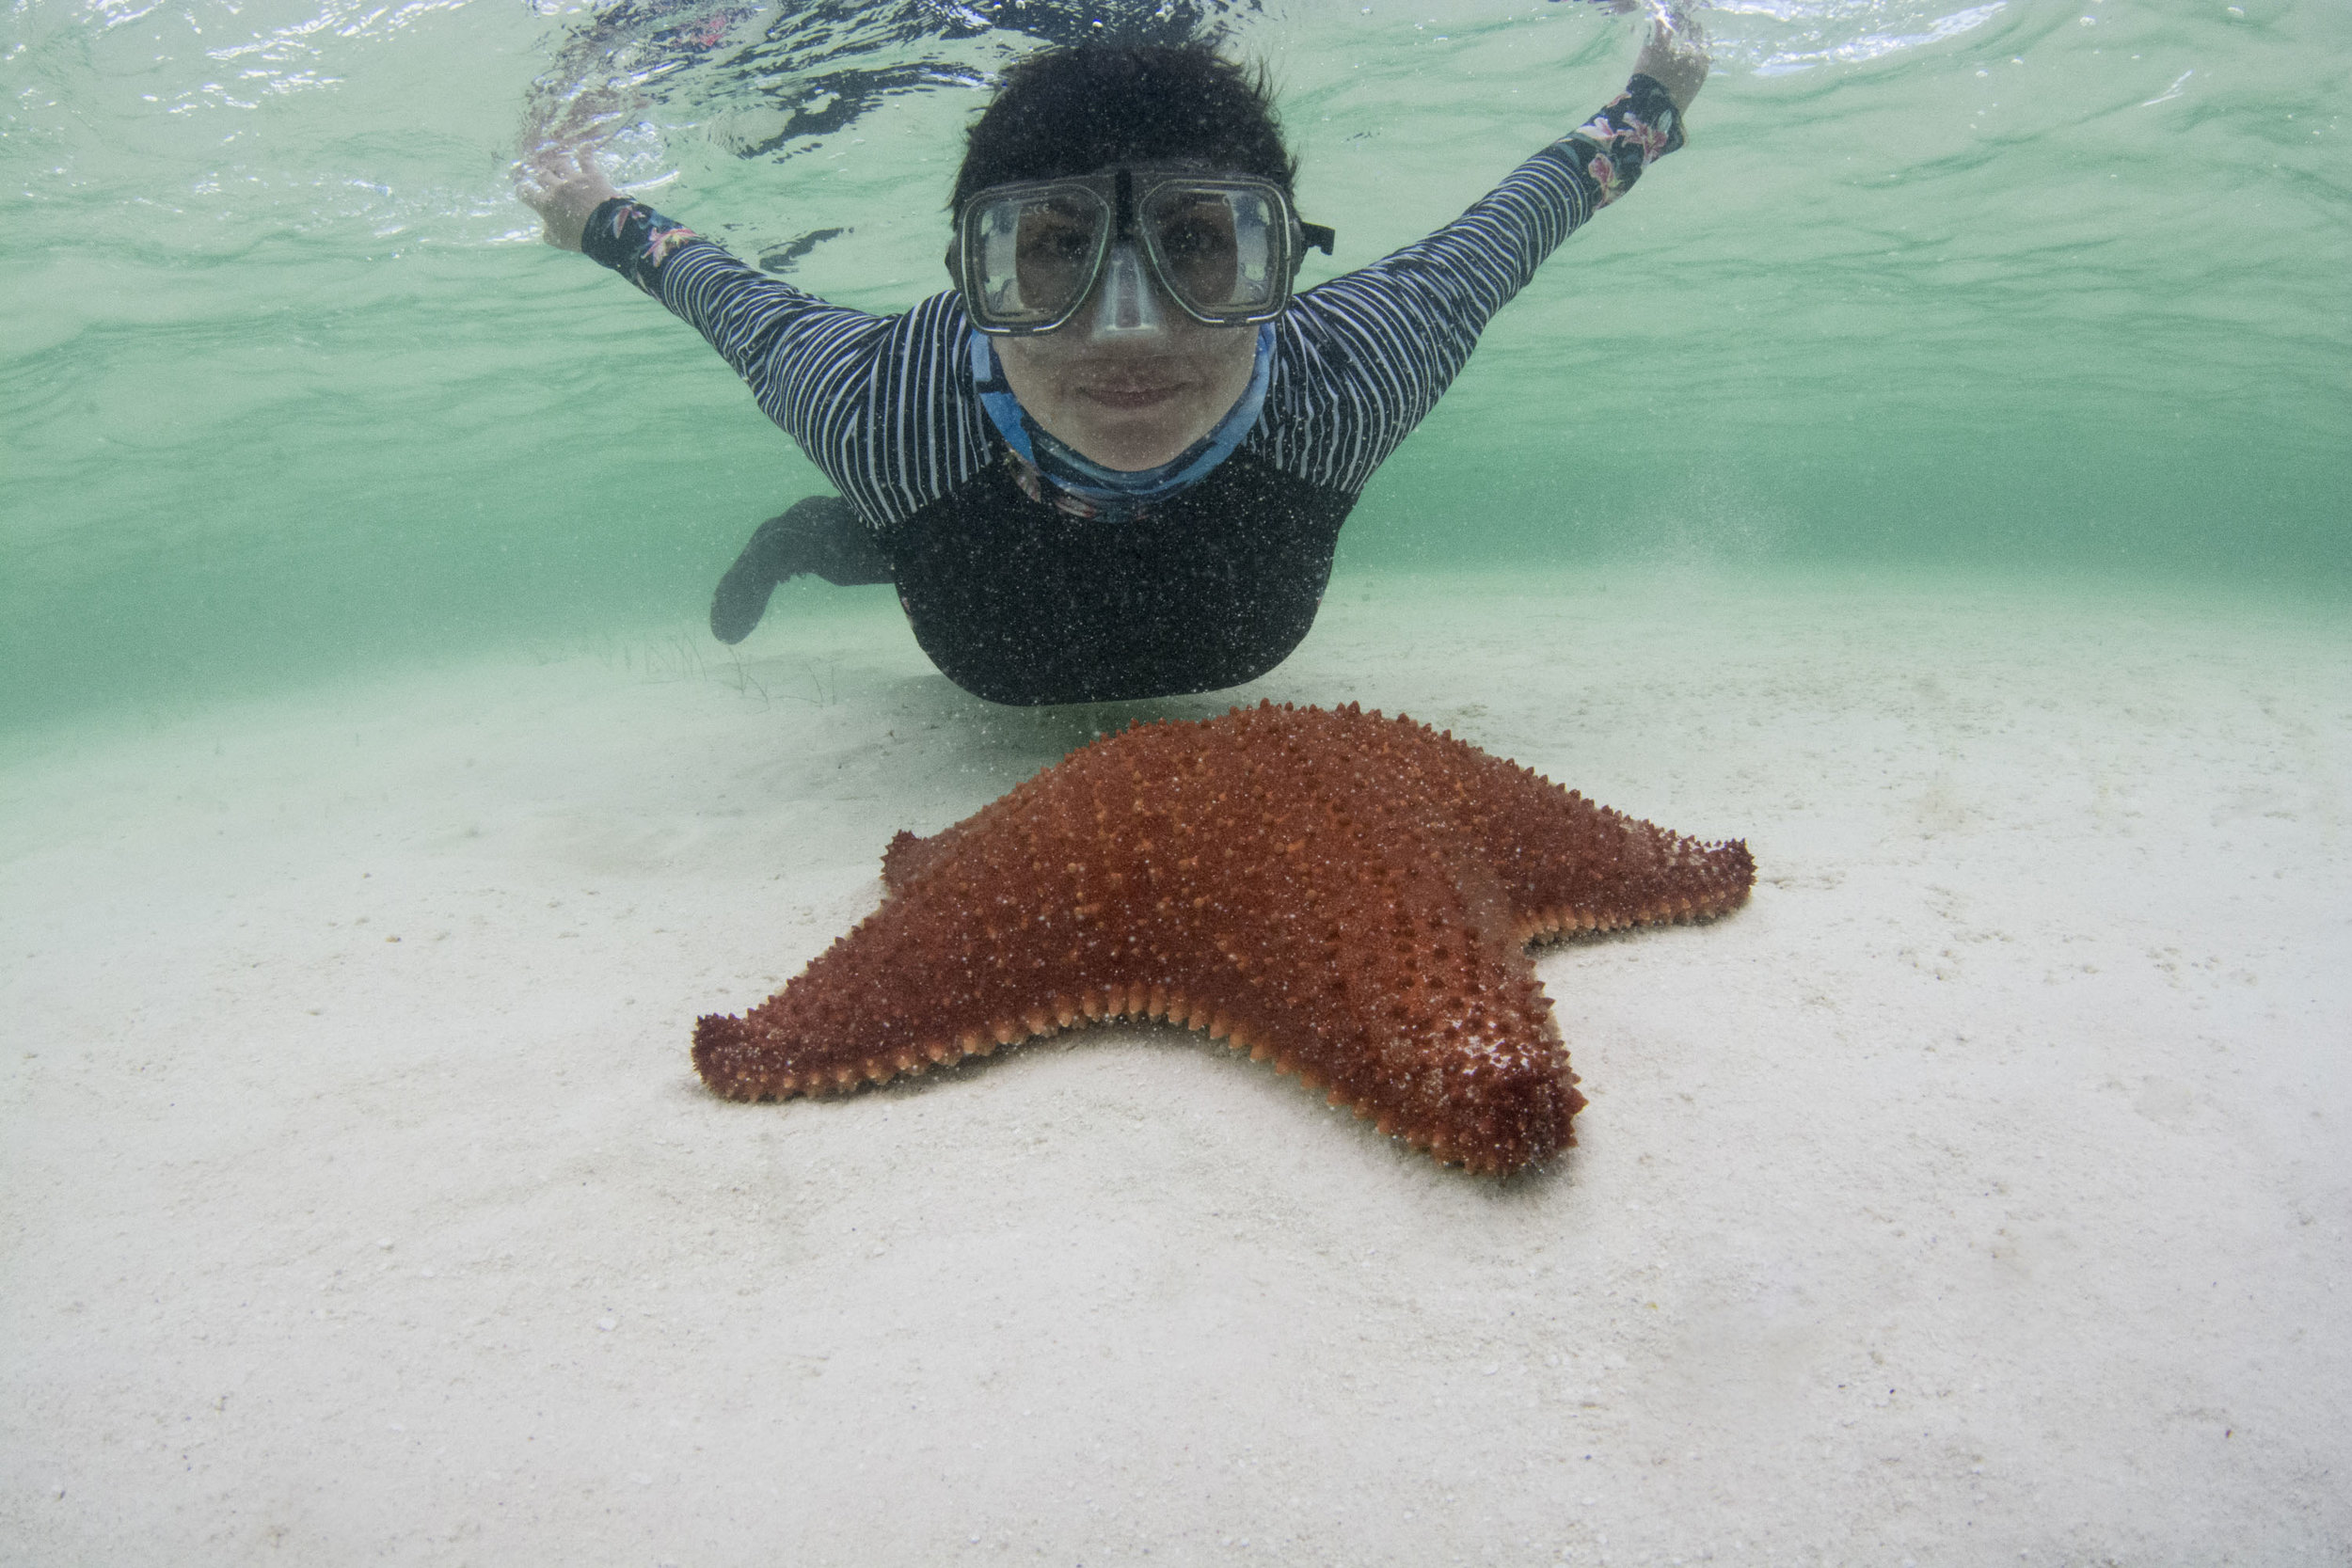 Expedition guest Vanessa with a red cushion sea star